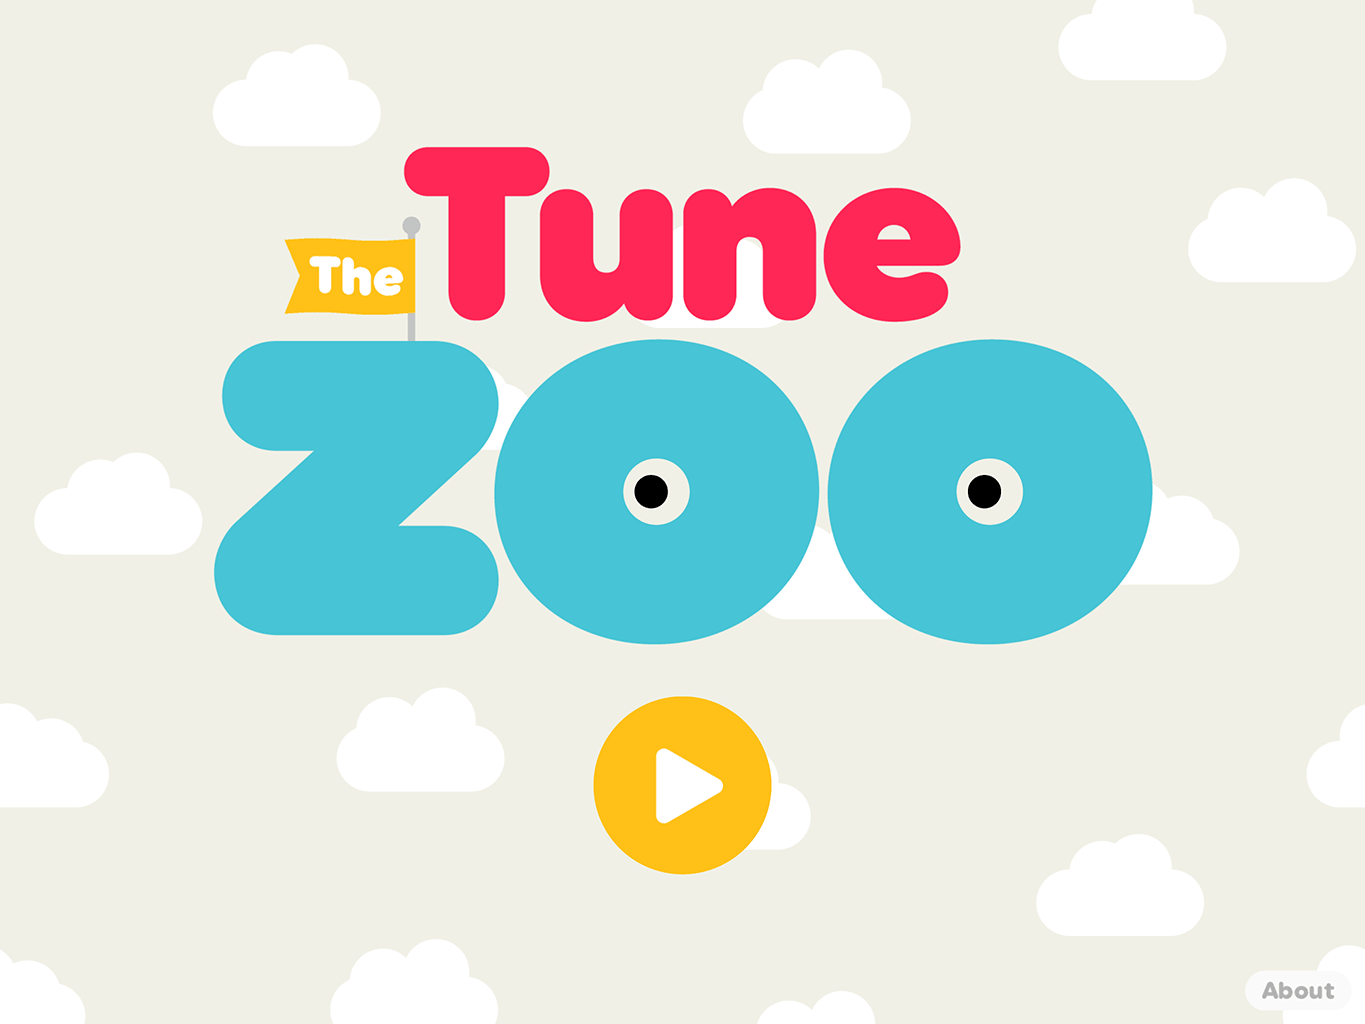 The Tune Zoo